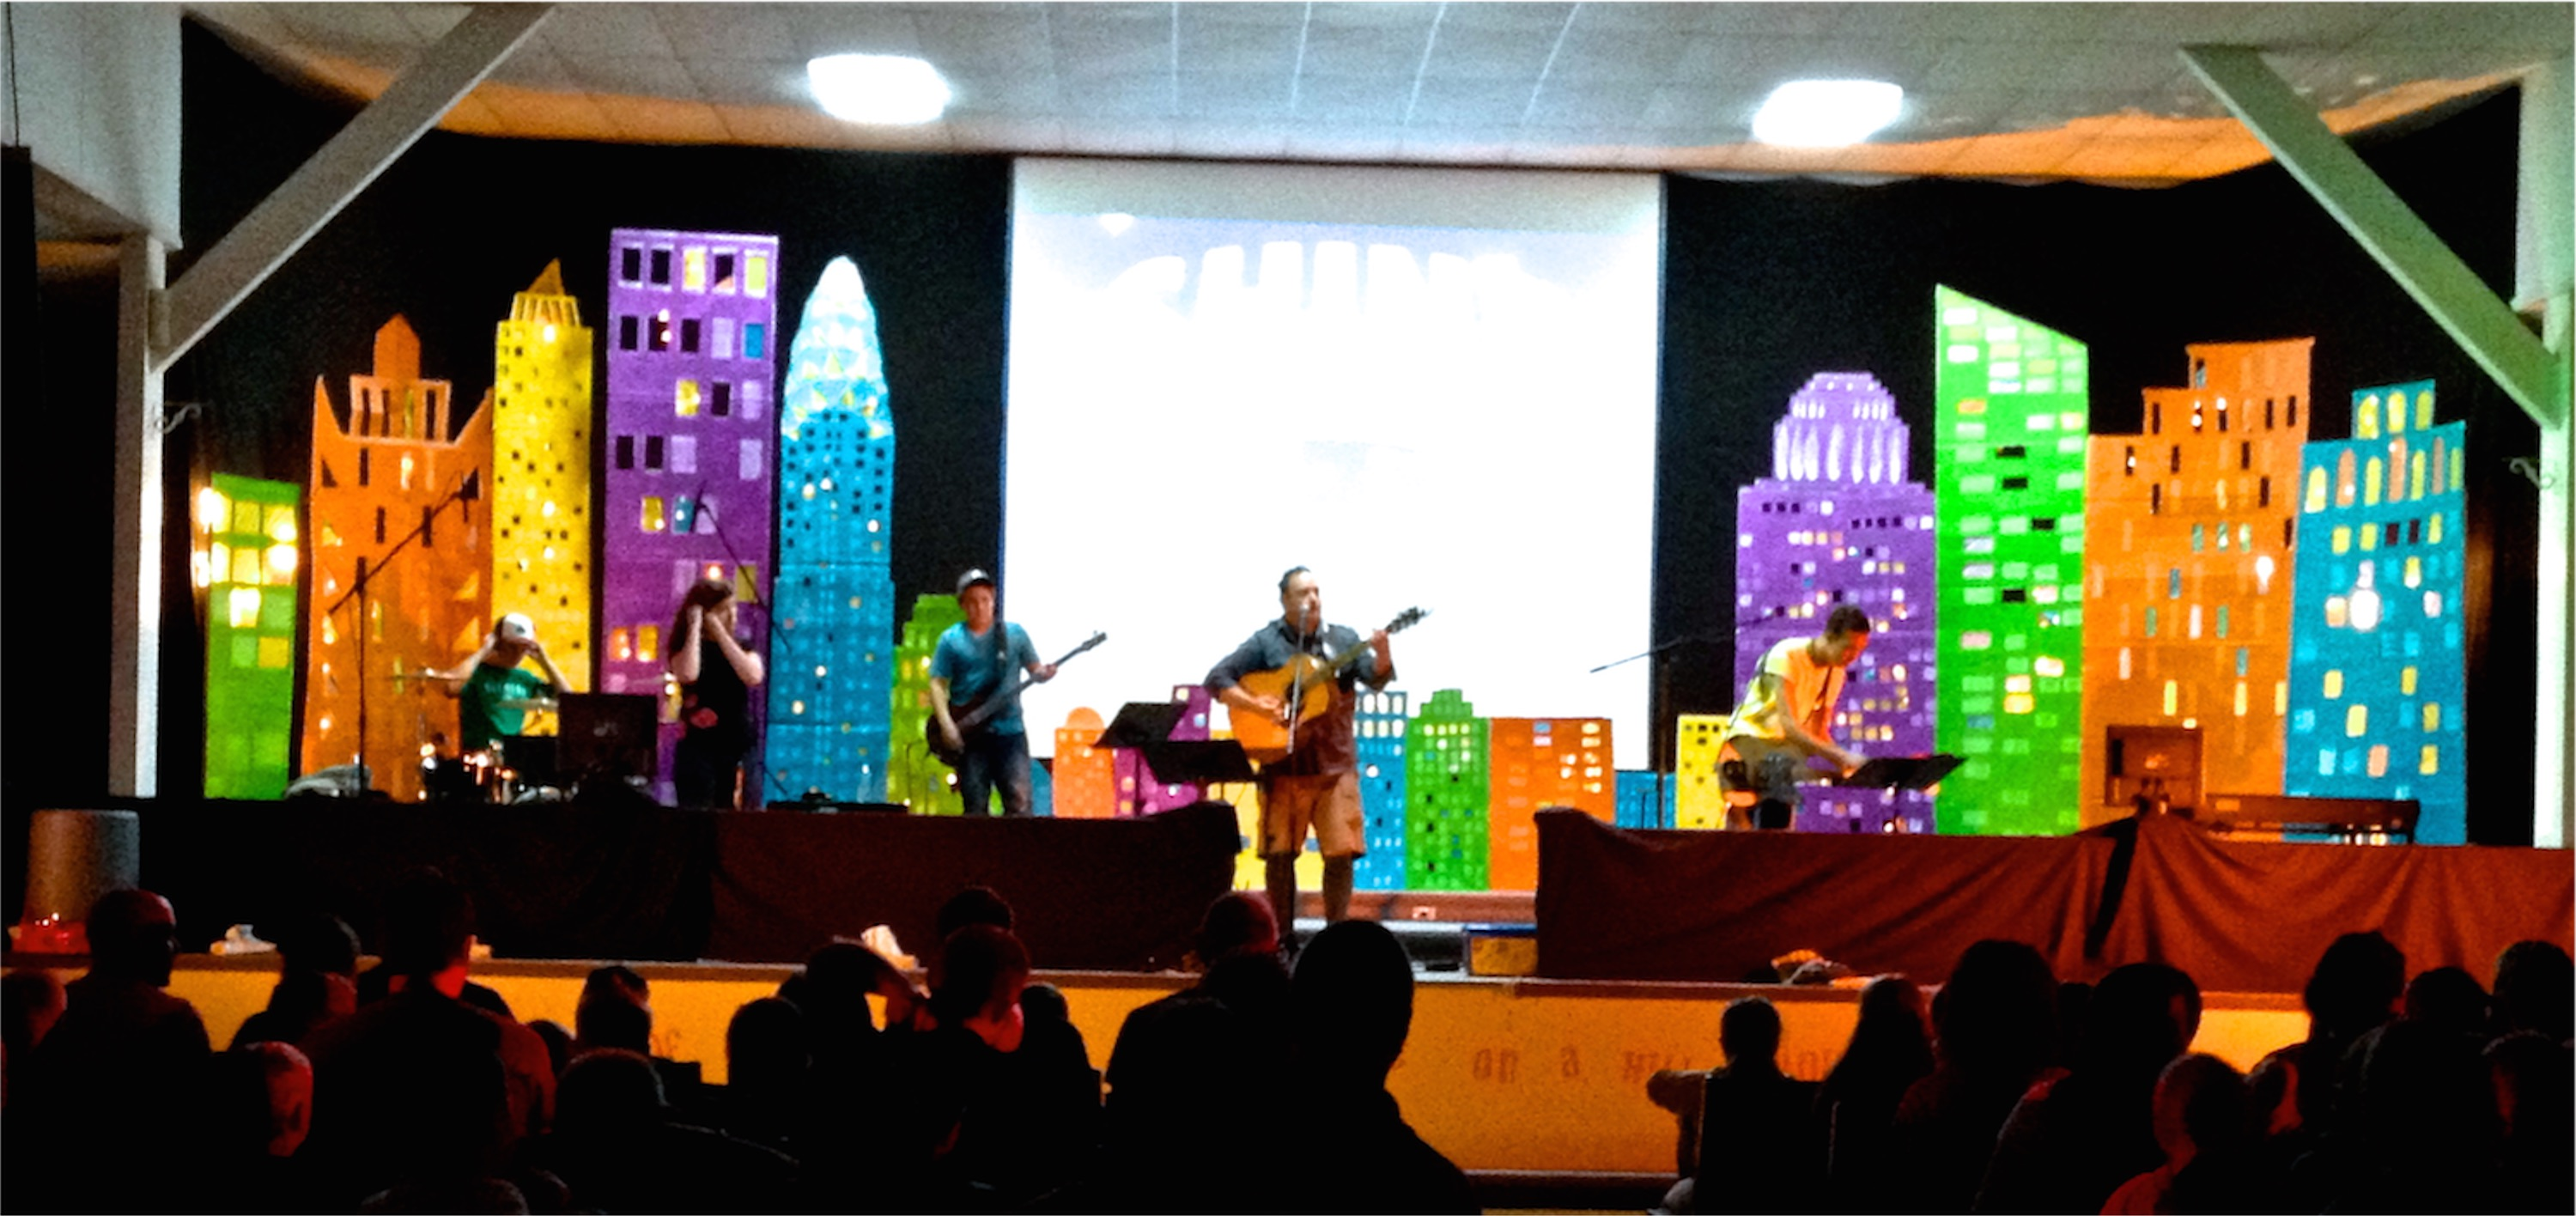 Kids in towers church stage design ideas for Background stage decoration